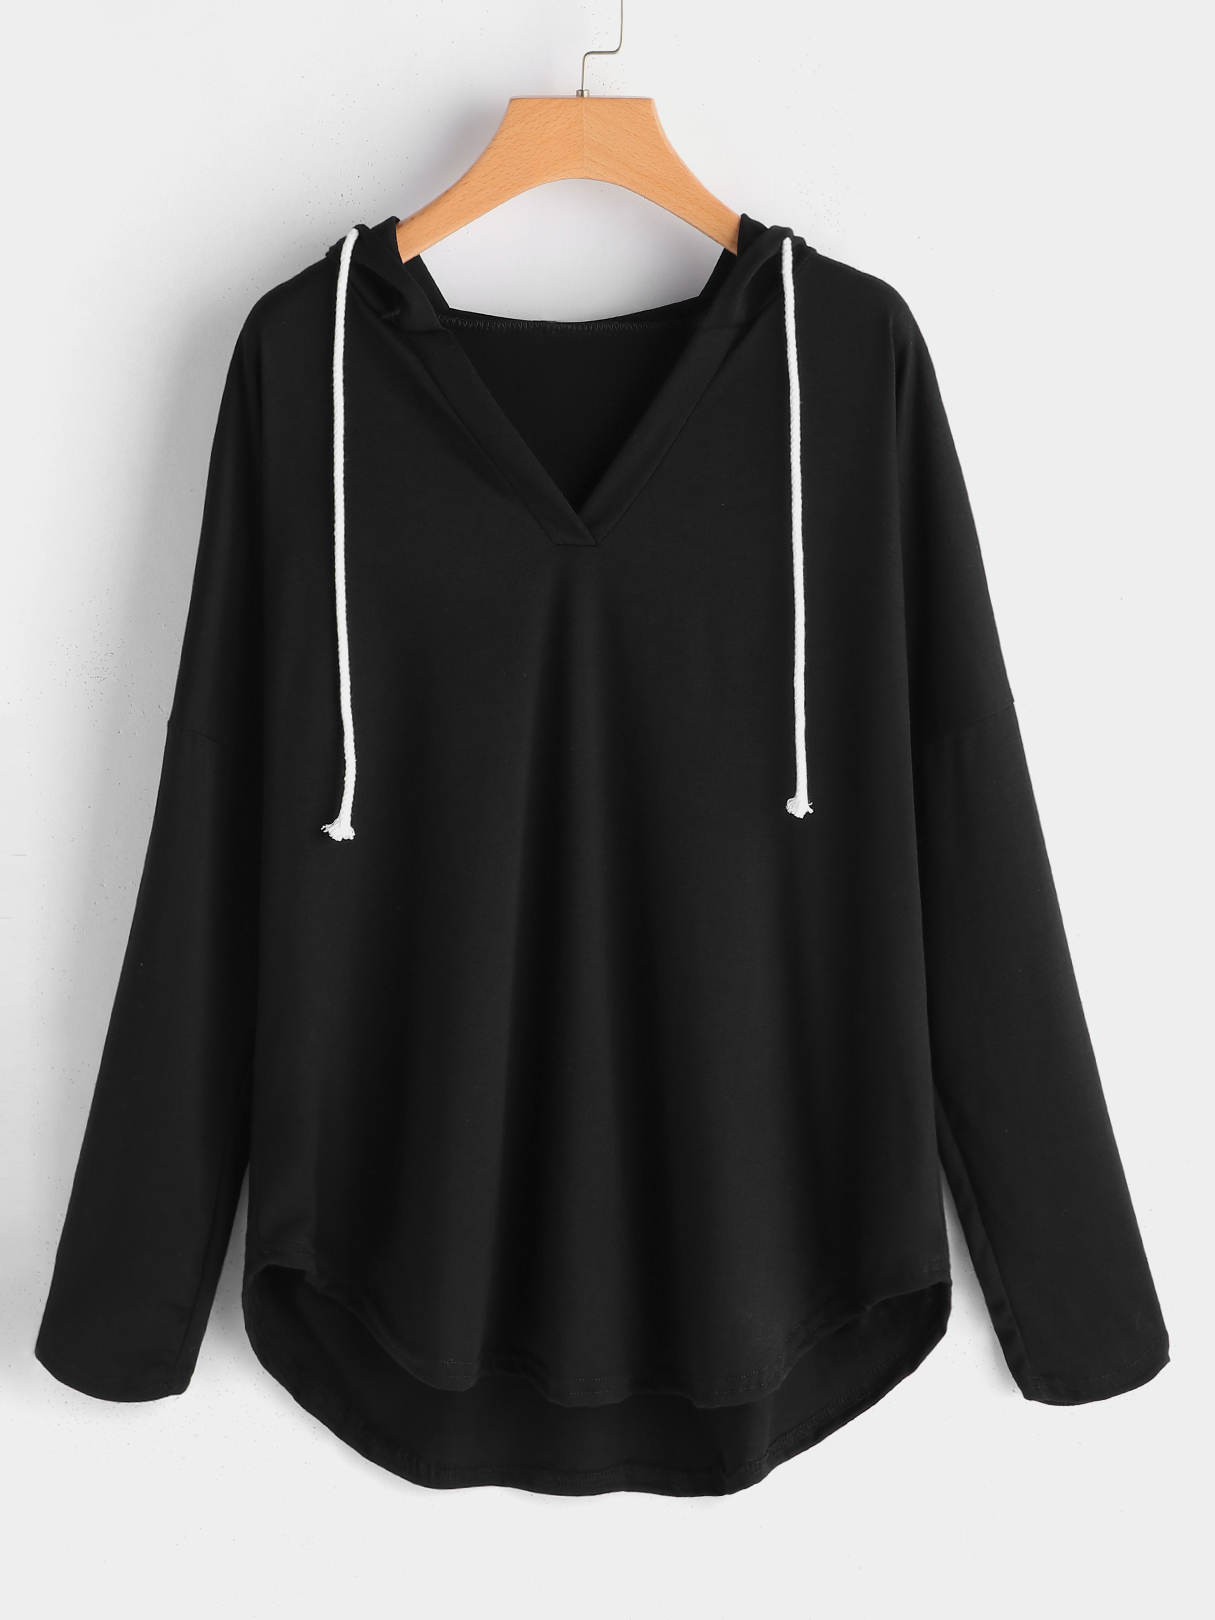 Plus Size Black High-low Hem Hoodie Sweatshirt